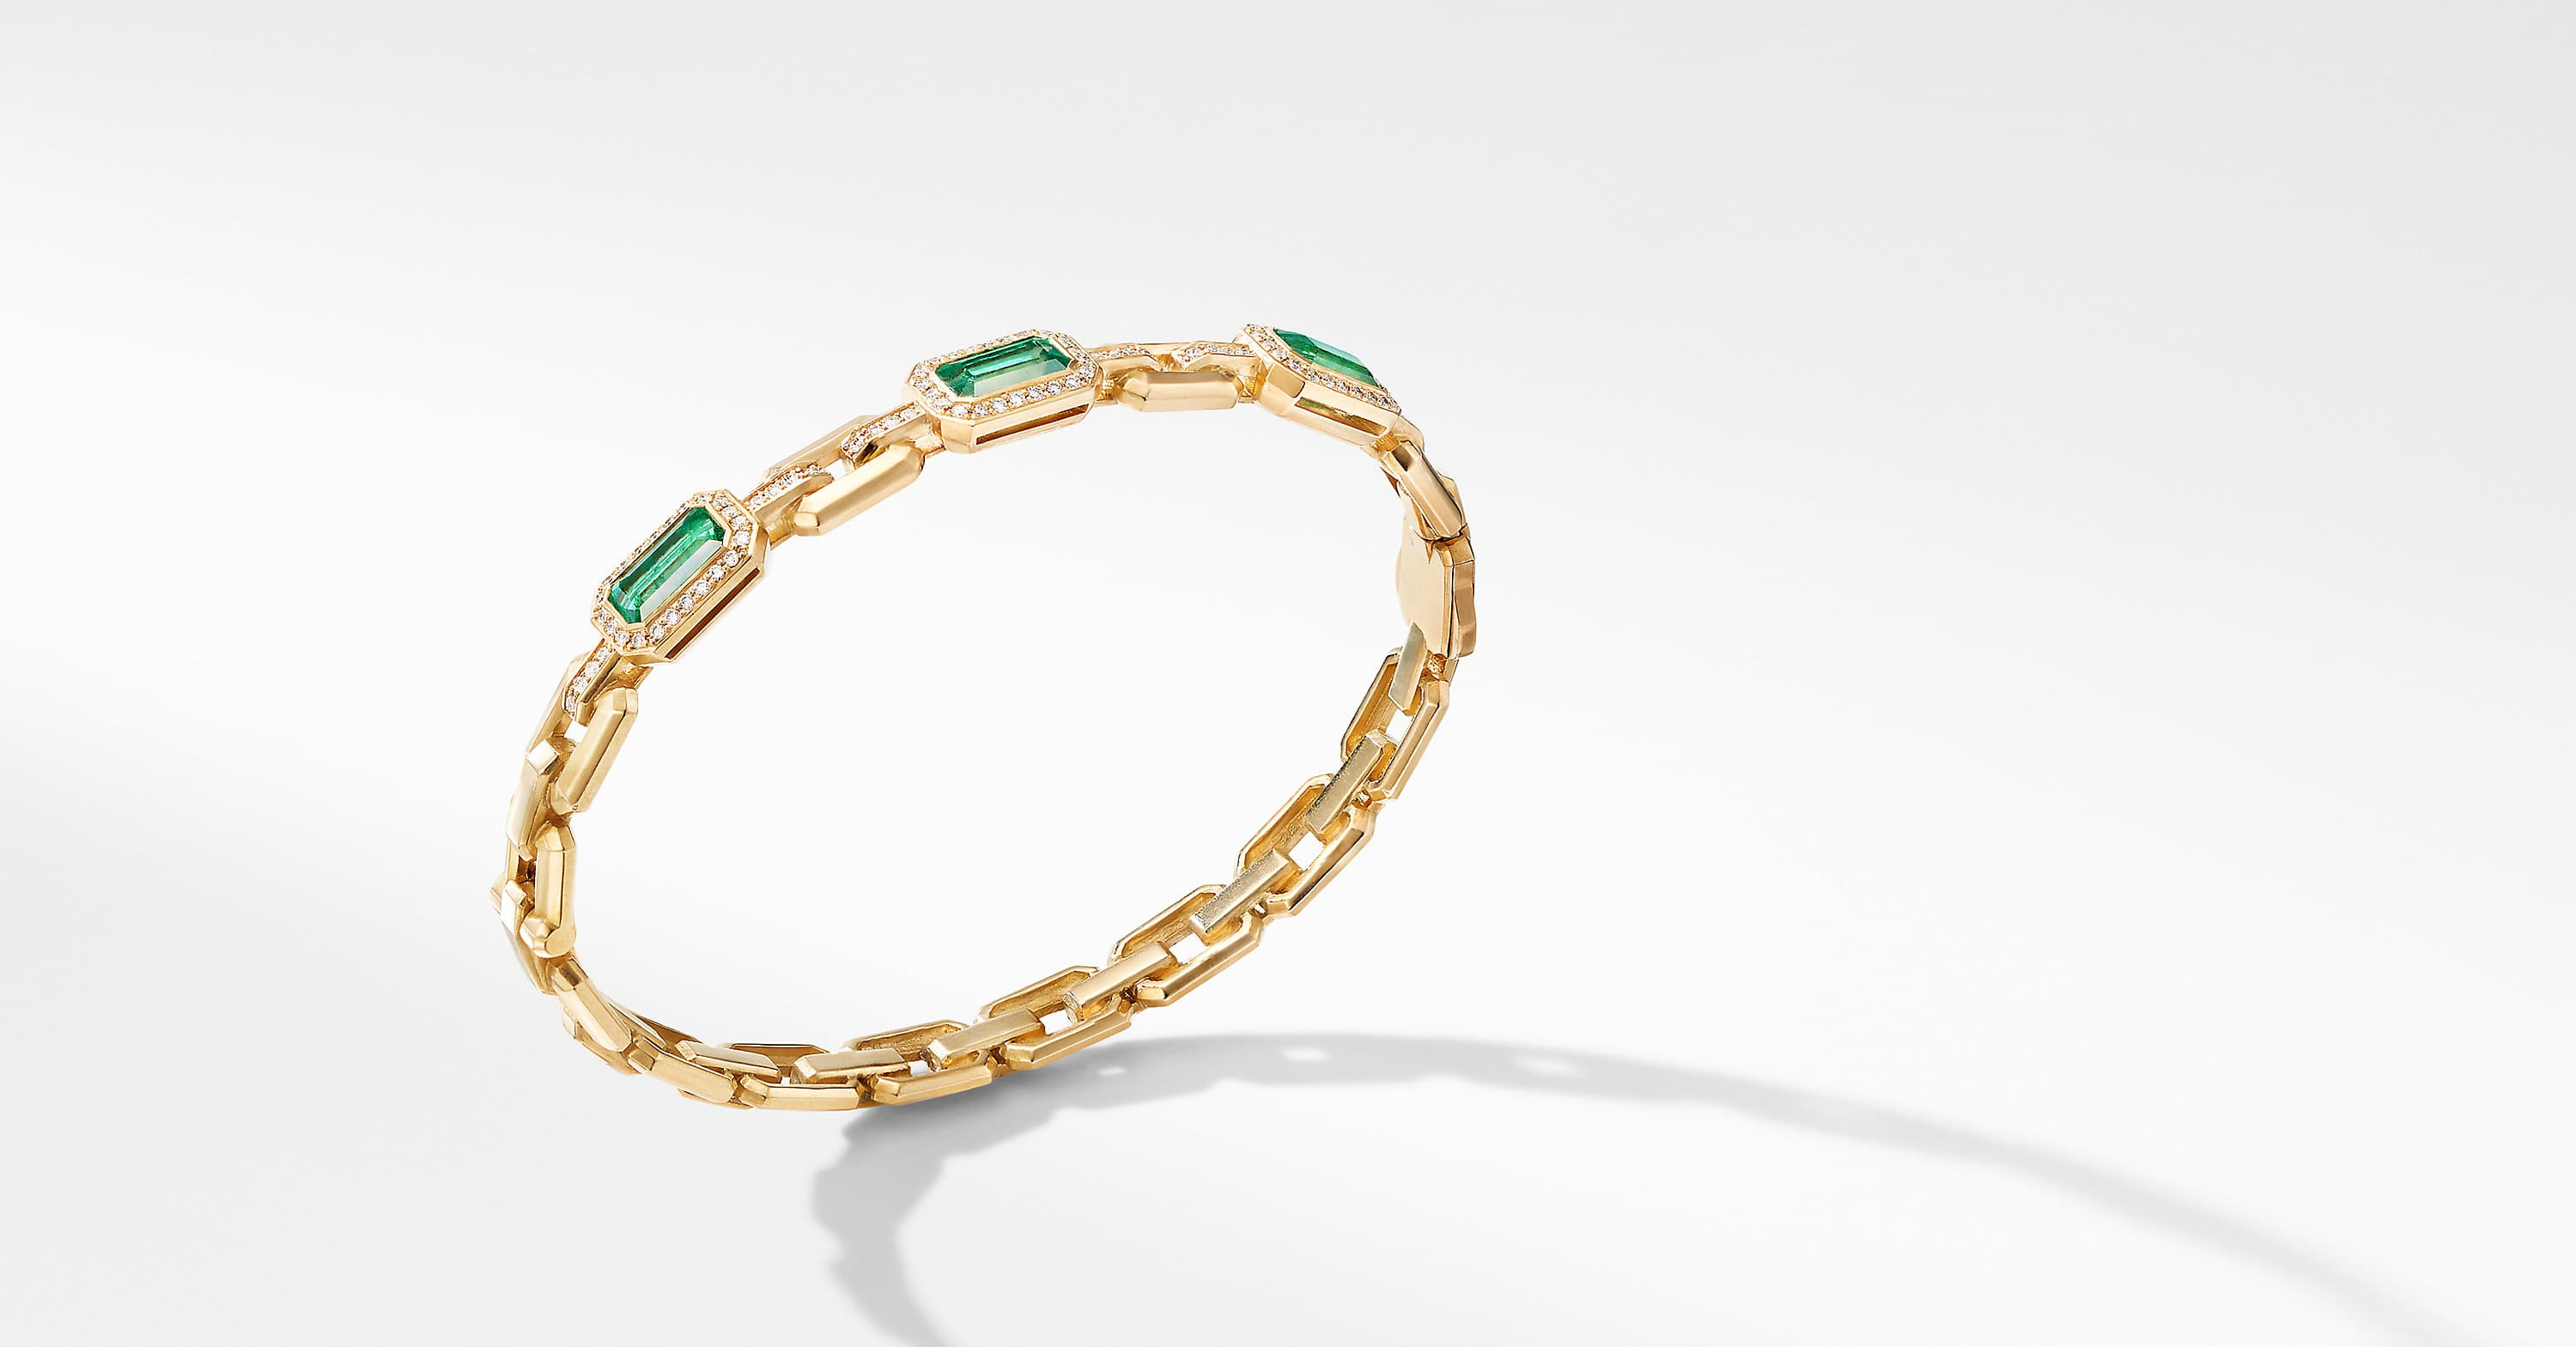 Novella Three Stone Bracelet in 18K Yellow Gold with Pavé